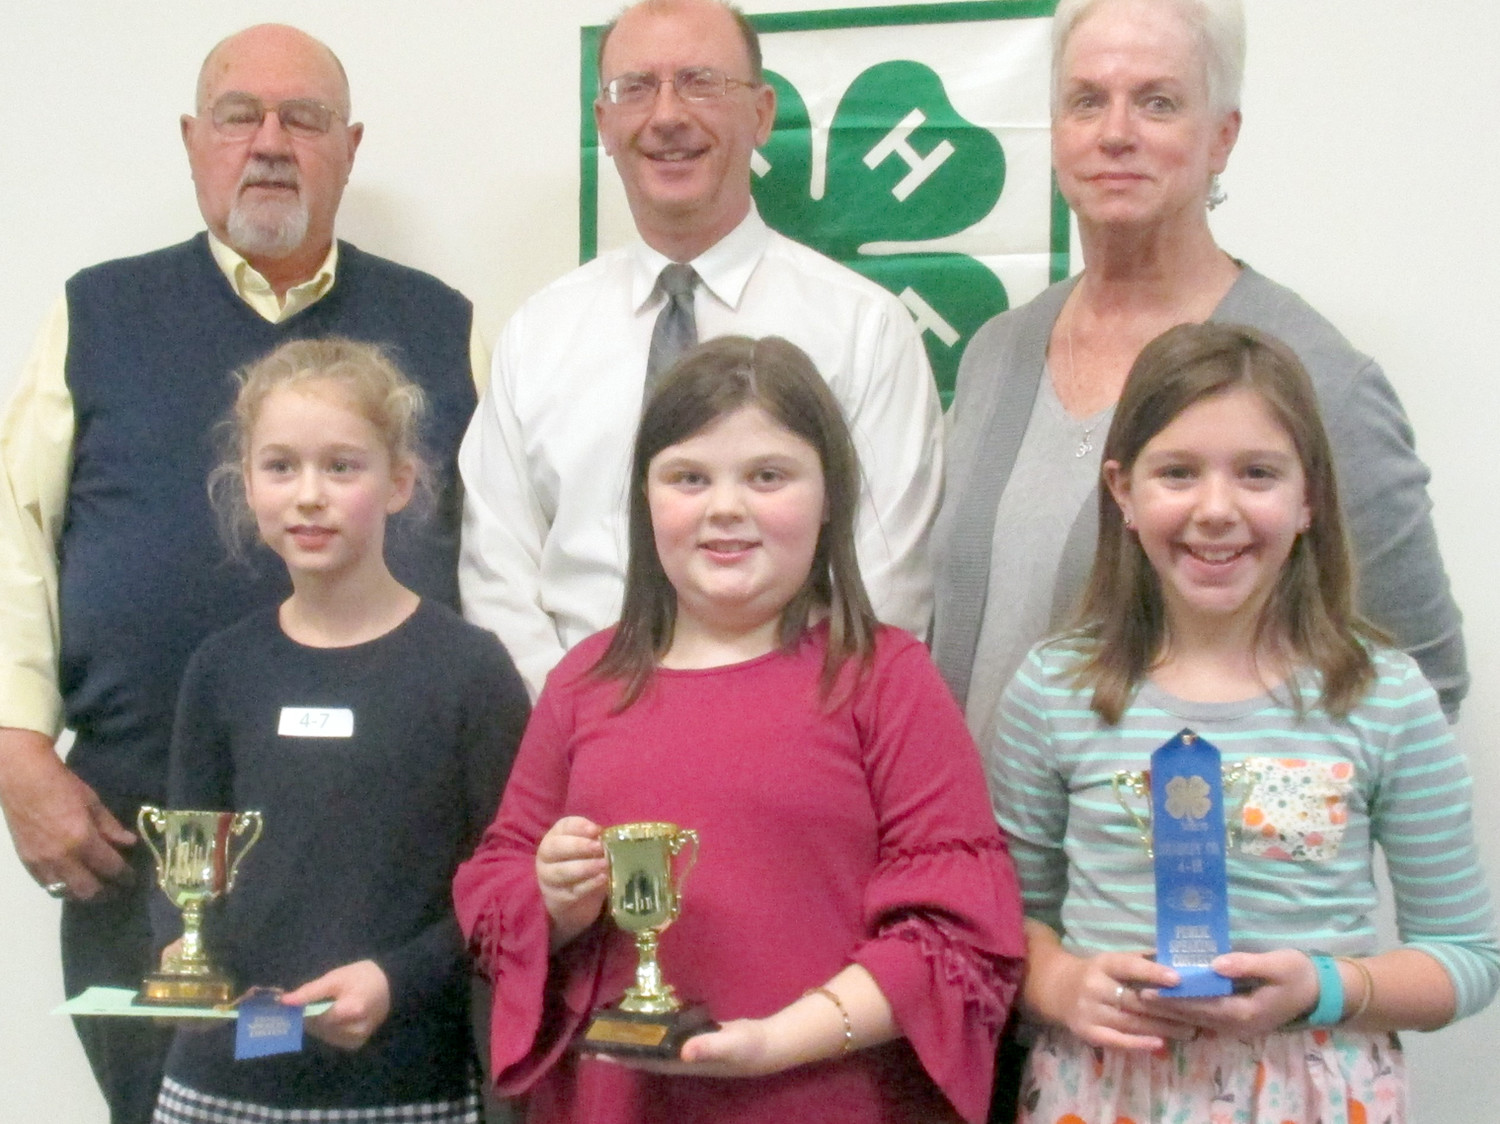 Bradley County 4-H Sub County Public Speaking Contest Winners for fourth grade were, front from left, Anna LaDuke from Taylor Elementary; Amelia DeBond from Charleston Elementary; and Olivia Parker from Tennessee Christian Preparatory School. Judges were Doug Greene, John Hood and Gayle Mingledorff.